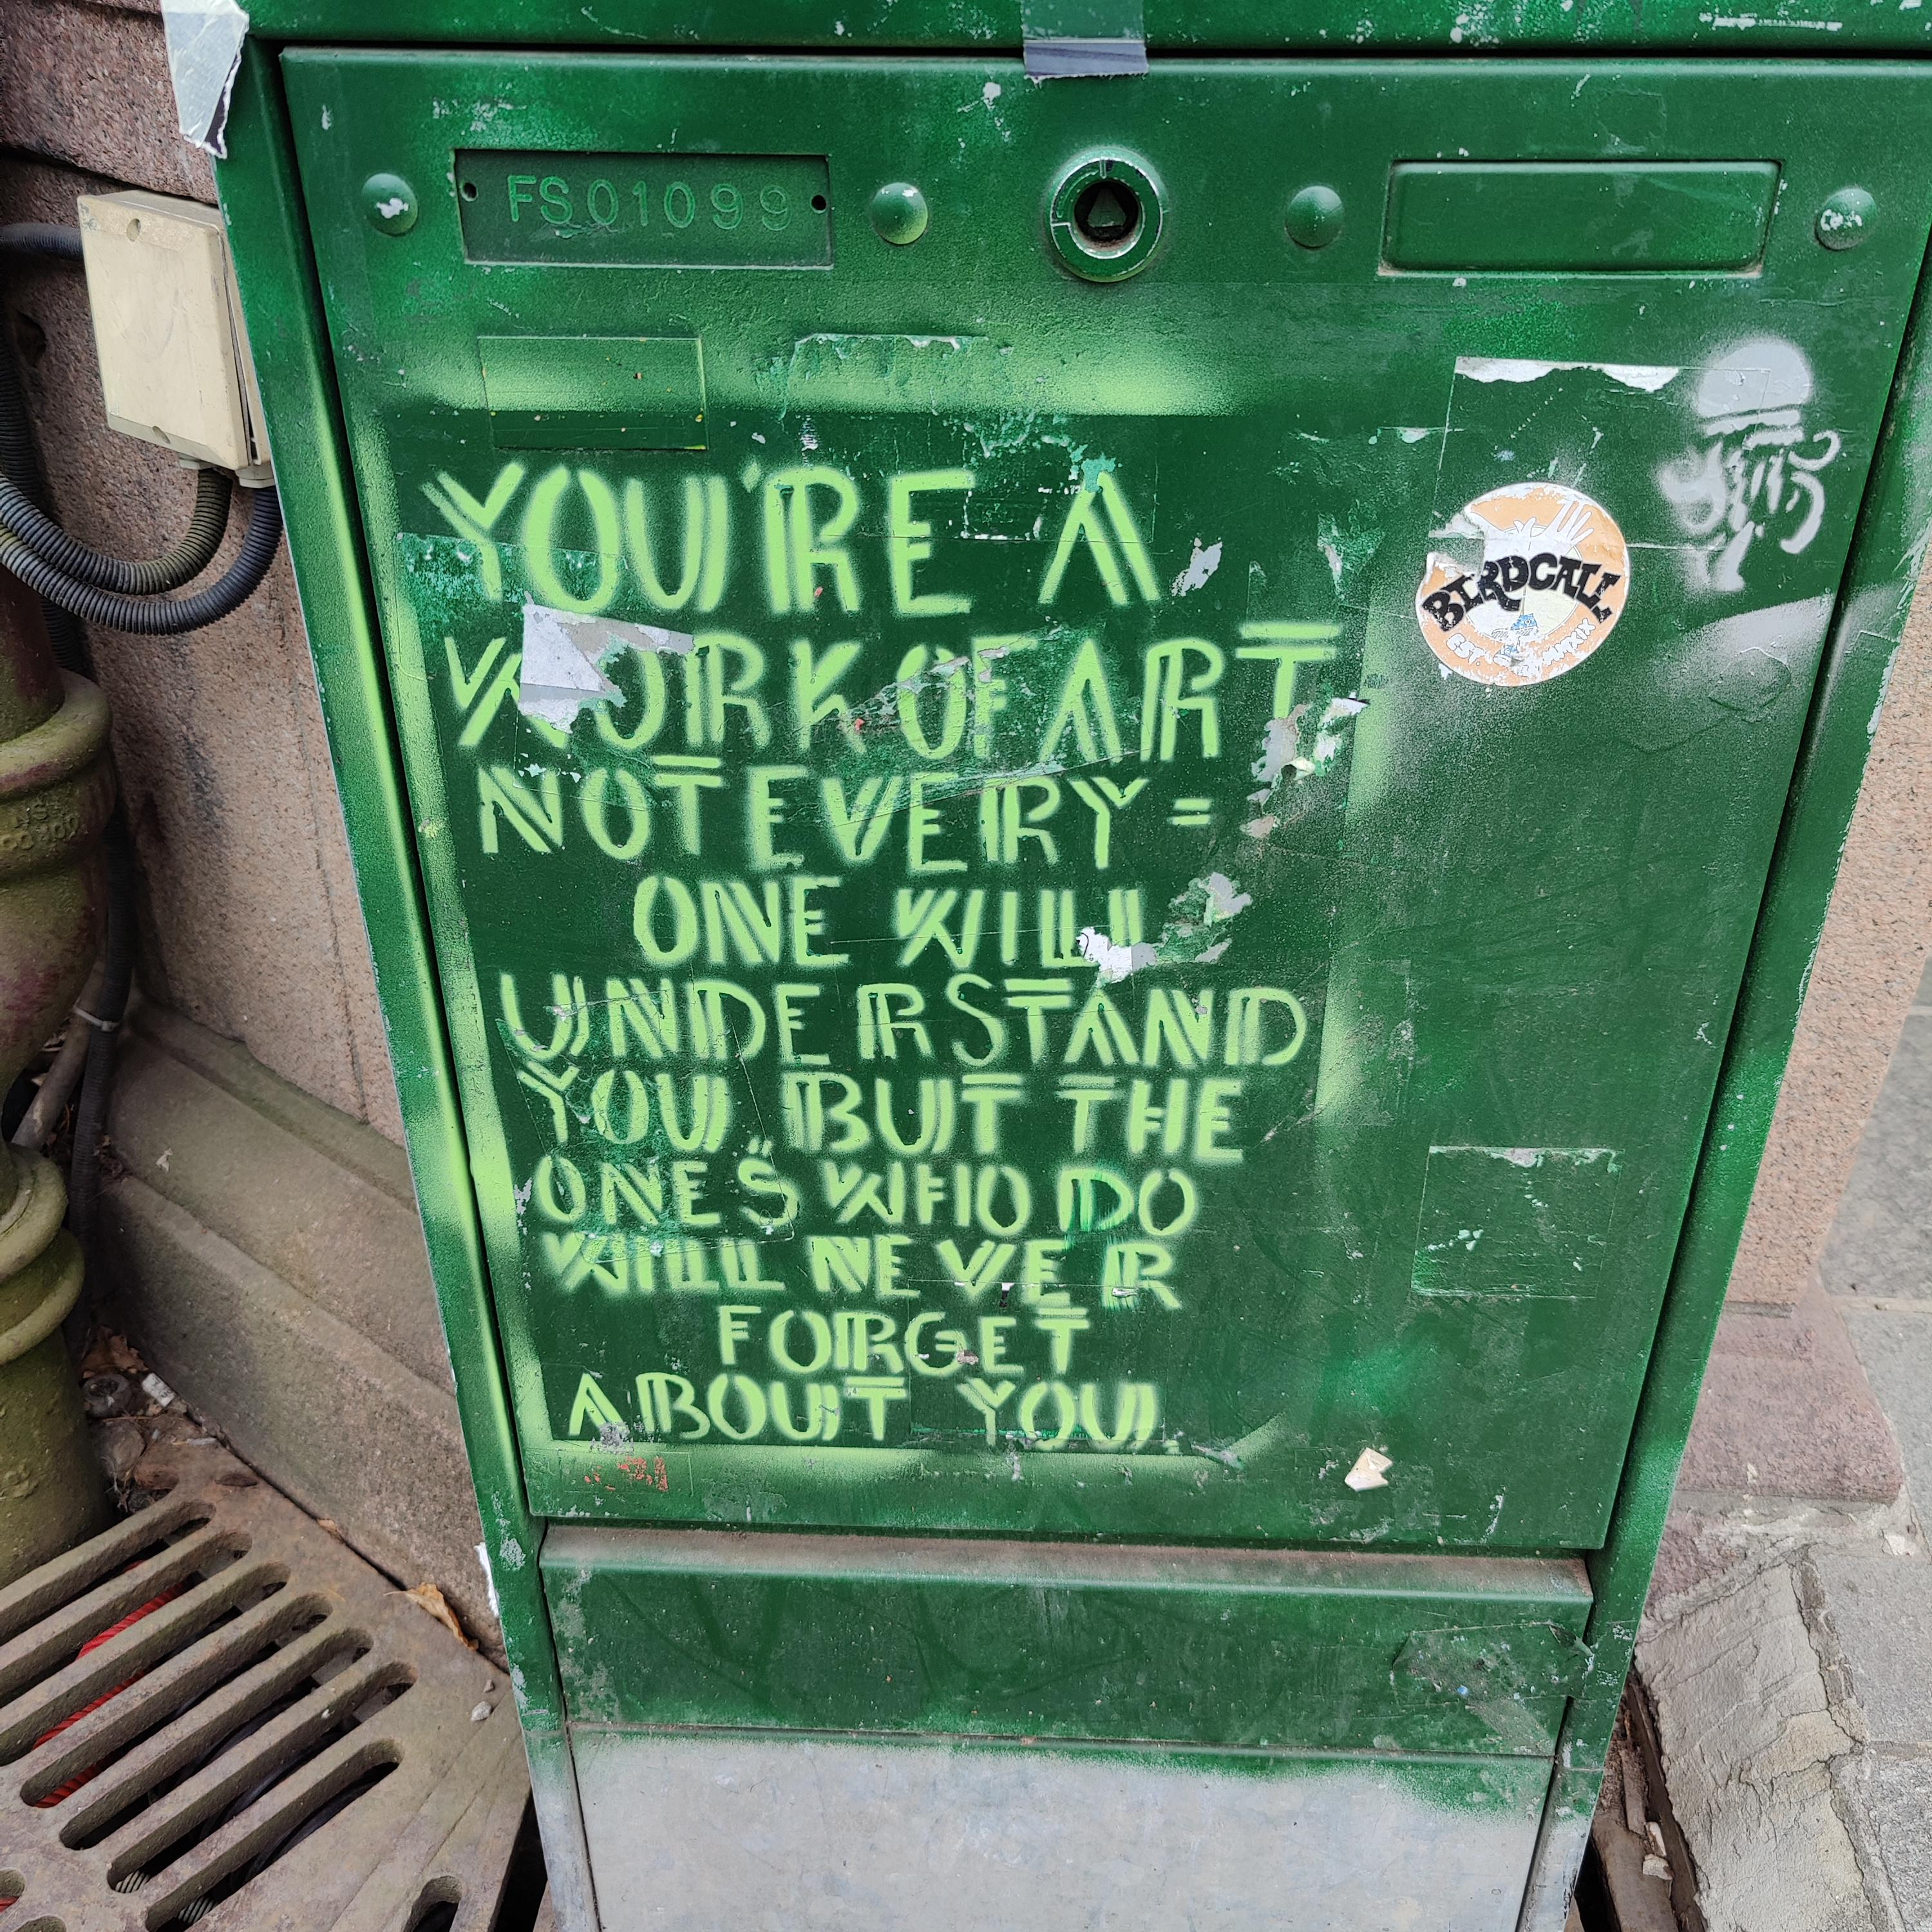 [Image] You're a work of art